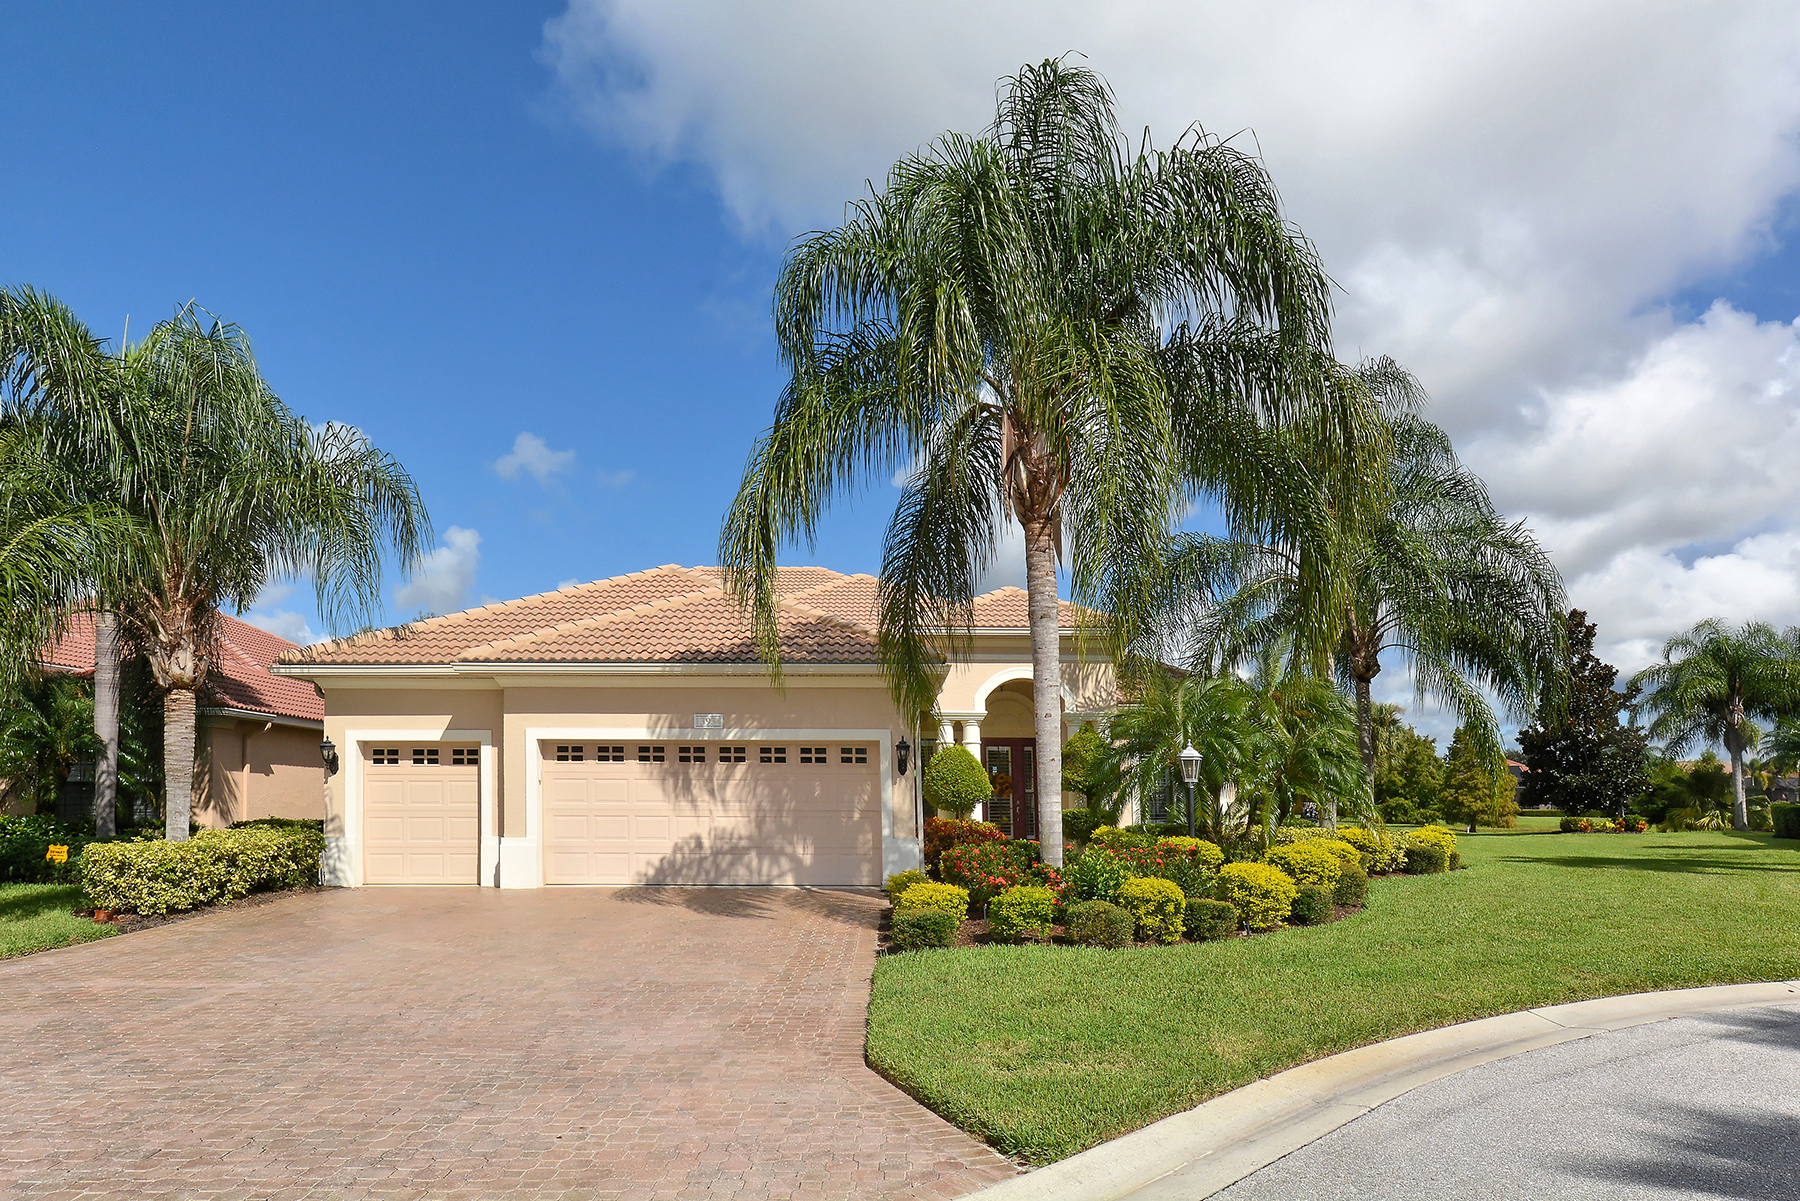 Single Family Home for Sale at LAKEWOOD RANCH COUNTRY CLUB 13934 Siena Loop Lakewood Ranch, Florida, 34202 United States